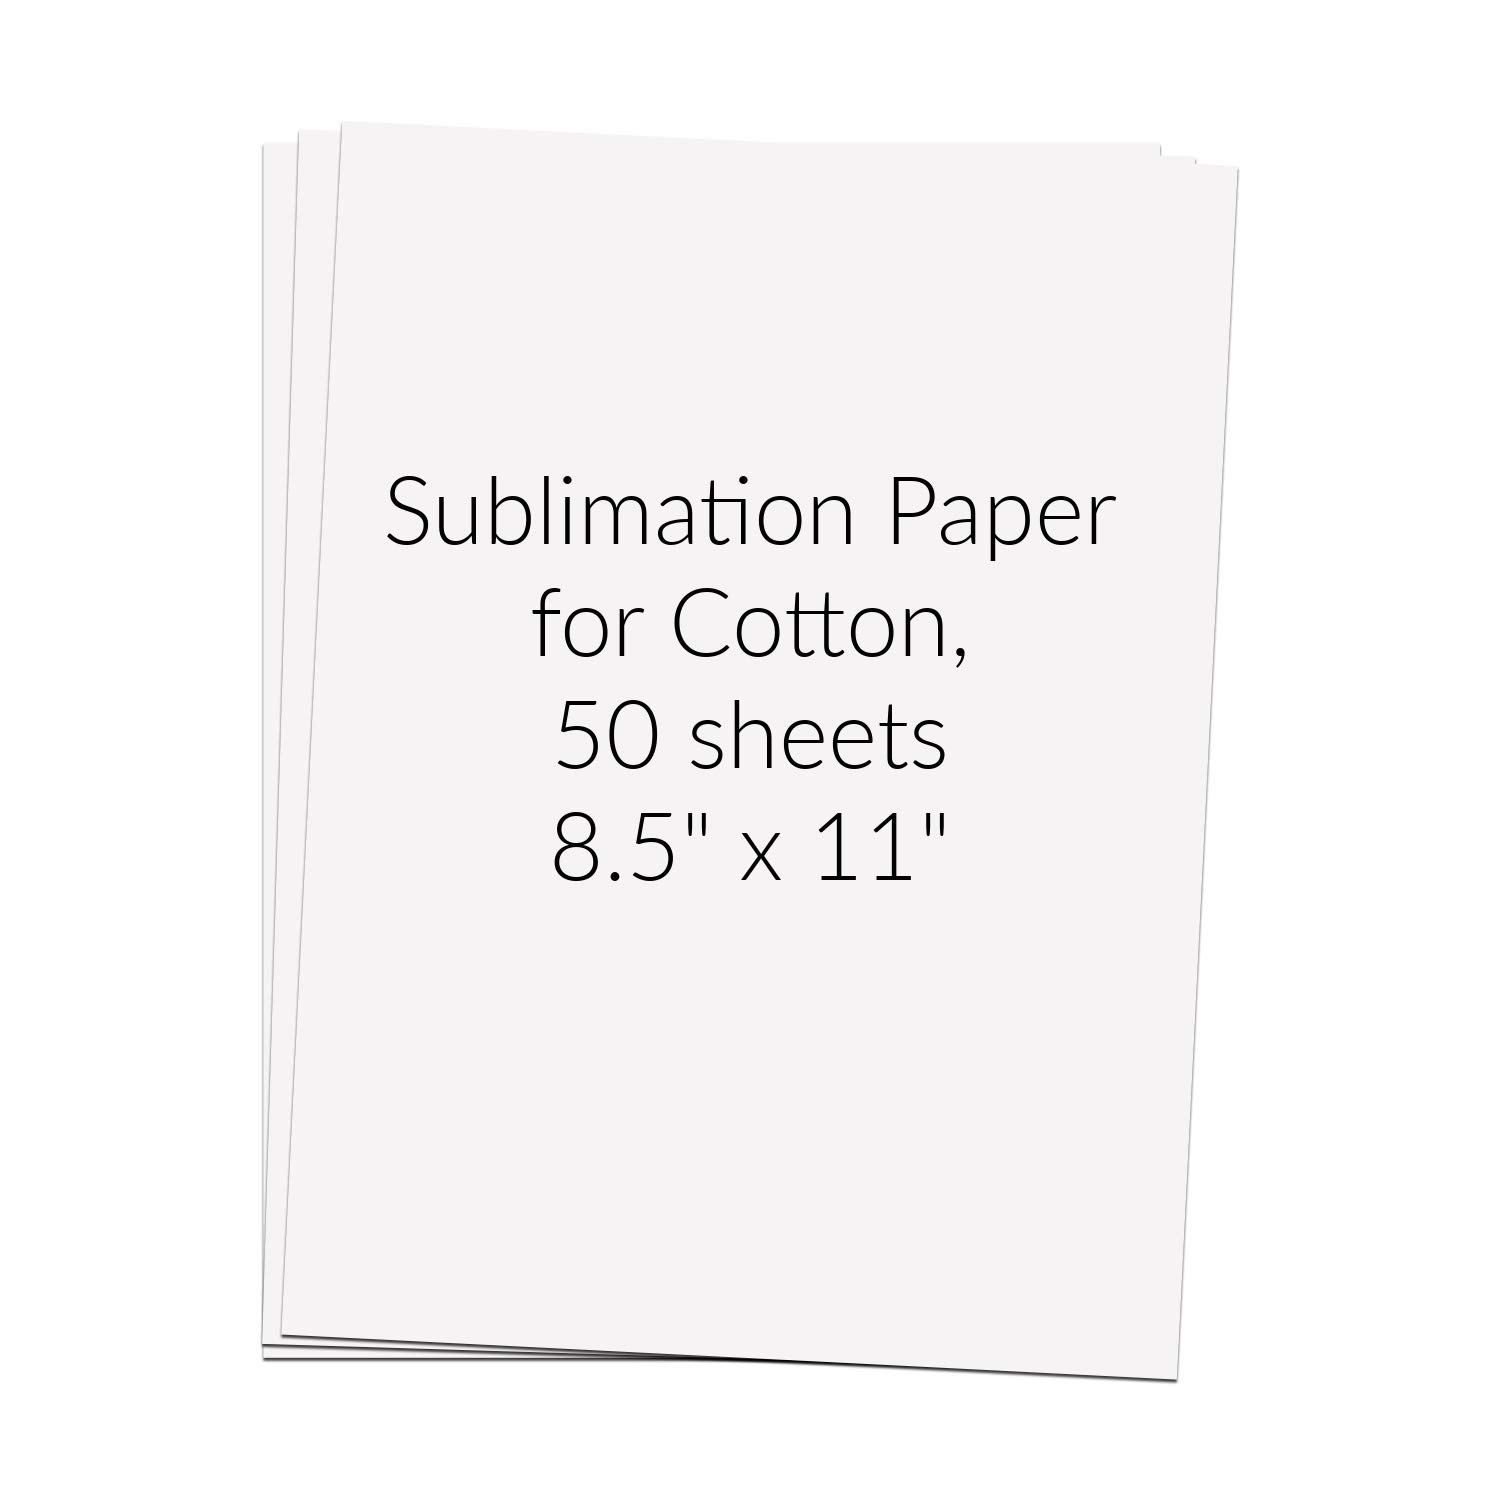 Kate's Craft Store 50 Sheets 8.5''x11'' Sublimation Paper for Cotton for Epson, Ricoh, and Sawgrass Printers with Sublimation Ink